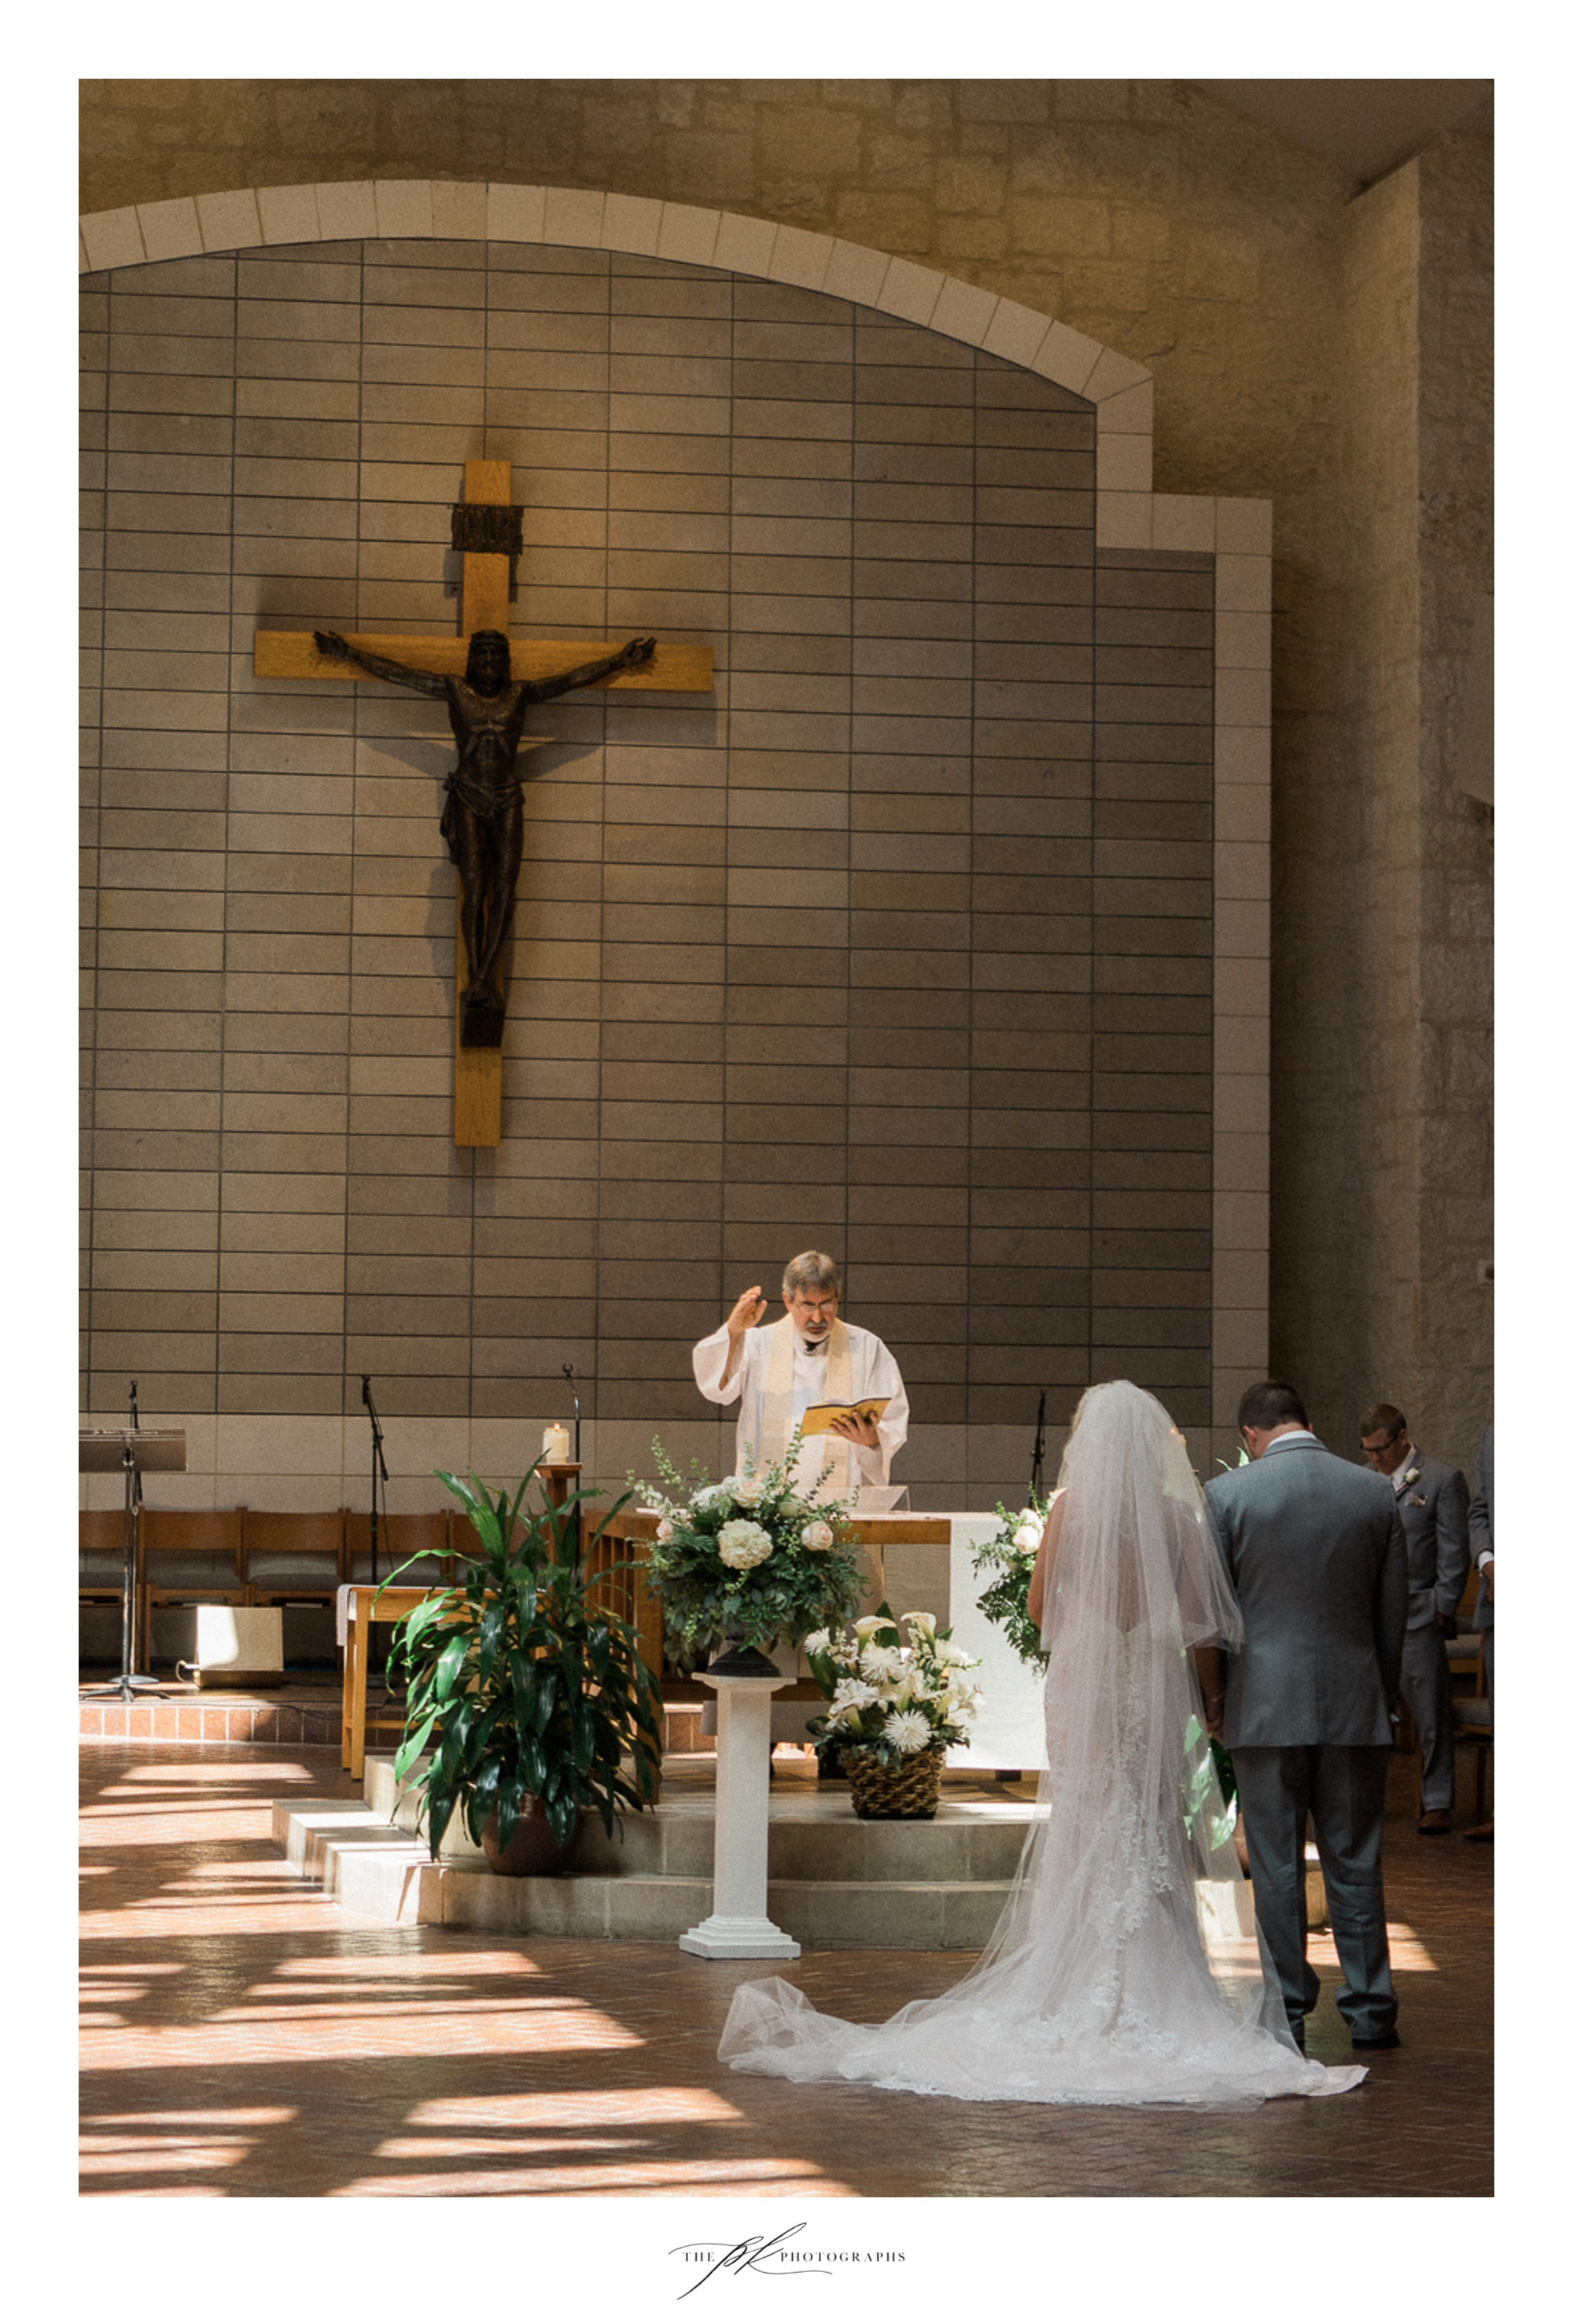 Courtney and Shane were blessed by the priest at the alter during their wedding cermeony.  St. Peter the Apostle Catholic Church | San Antonio Wedding Photographer